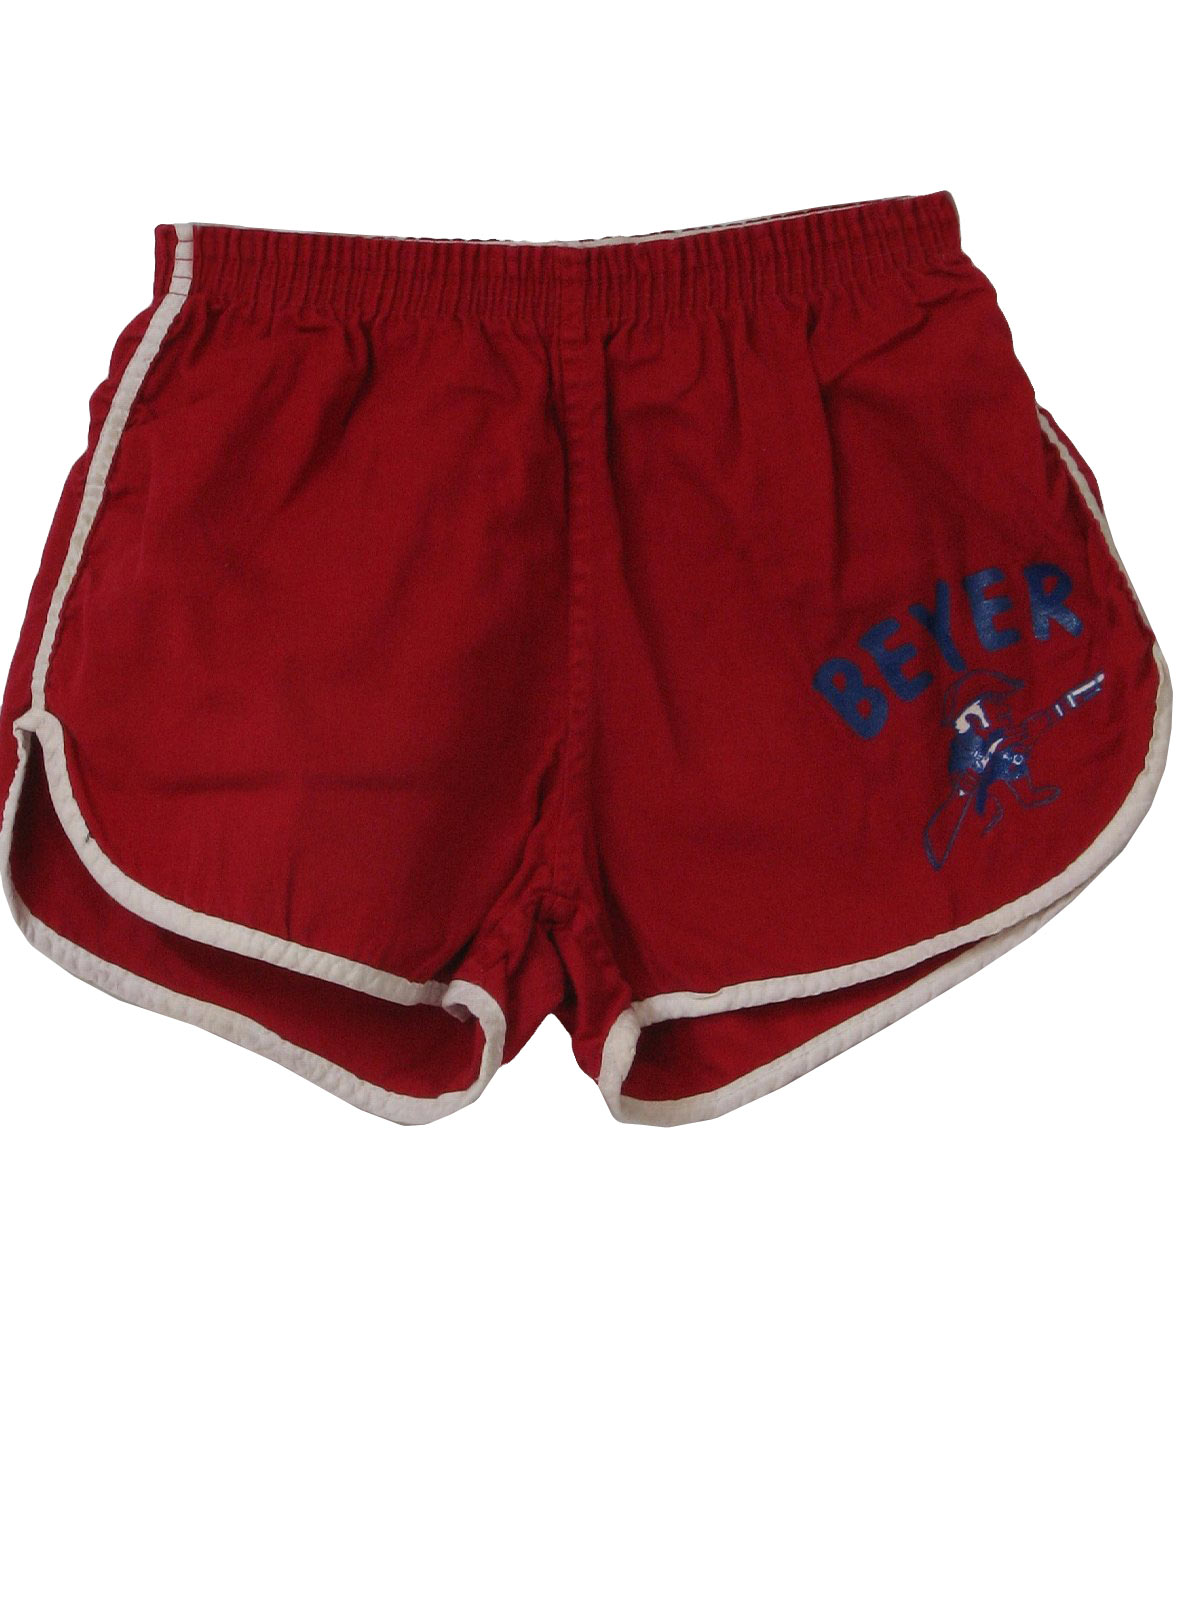 Wholesale Home Decor Items 80 S Vintage Shorts 80s Champion Mens Red White And